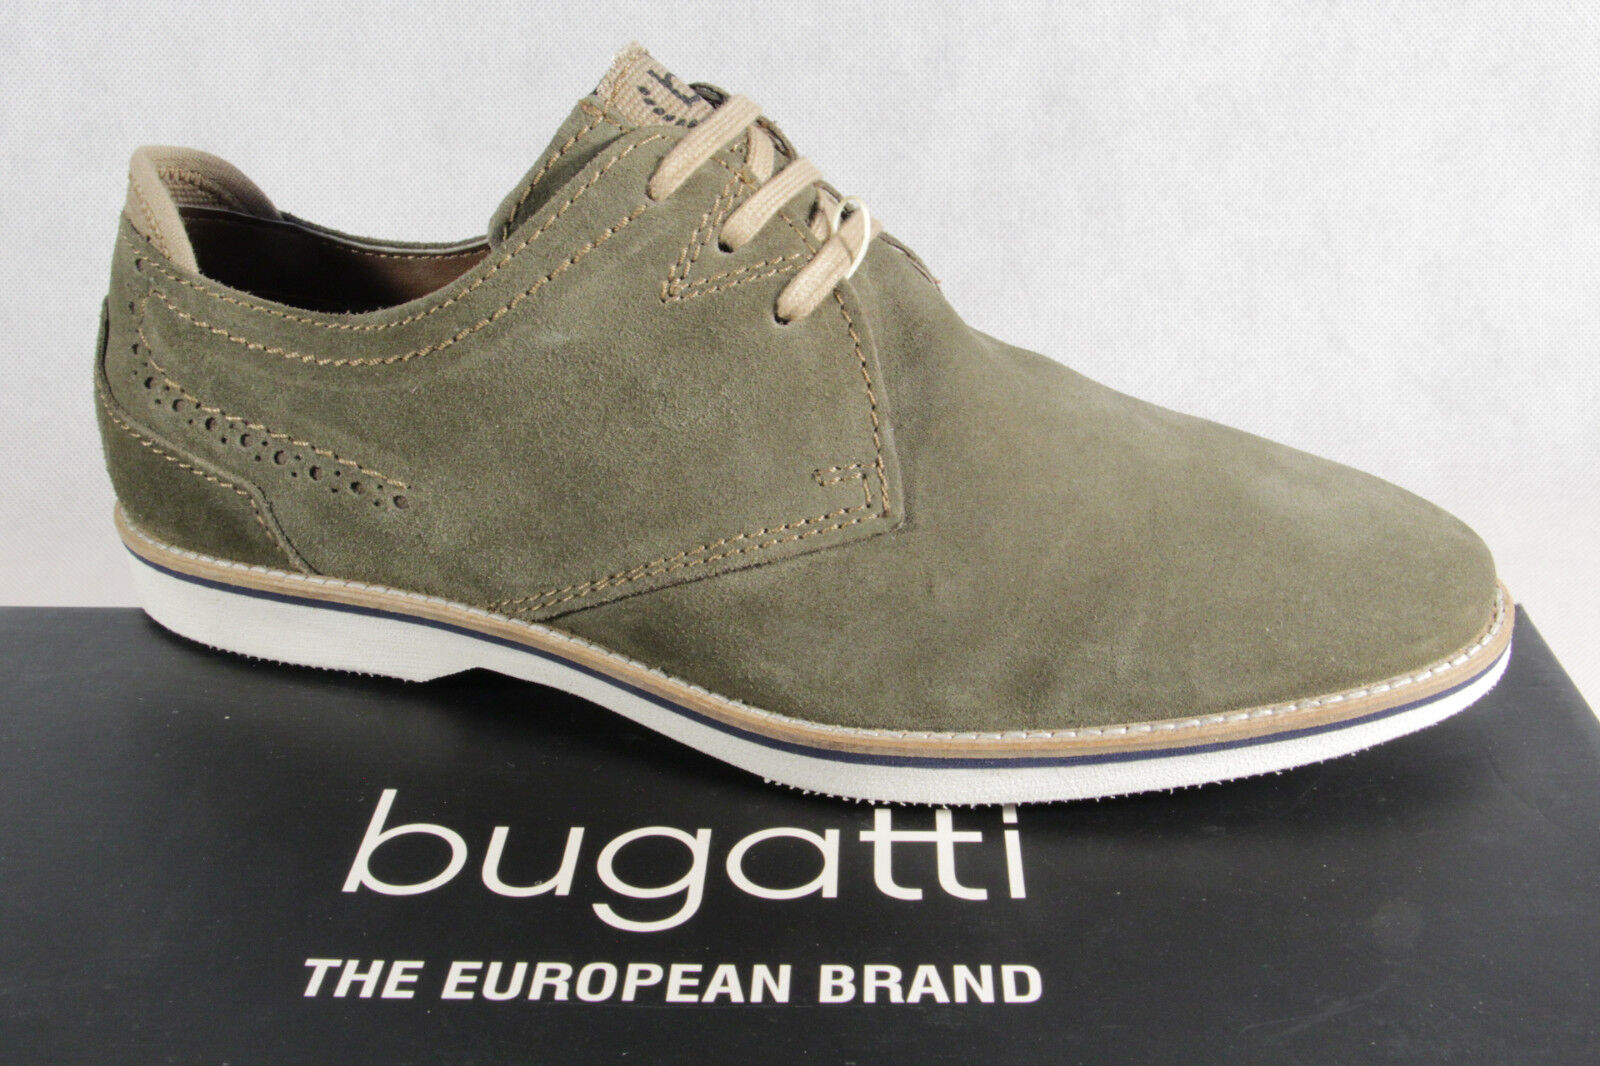 Bugatti Homme Chaussures à Lacets Basses Baskets Olive Neuf